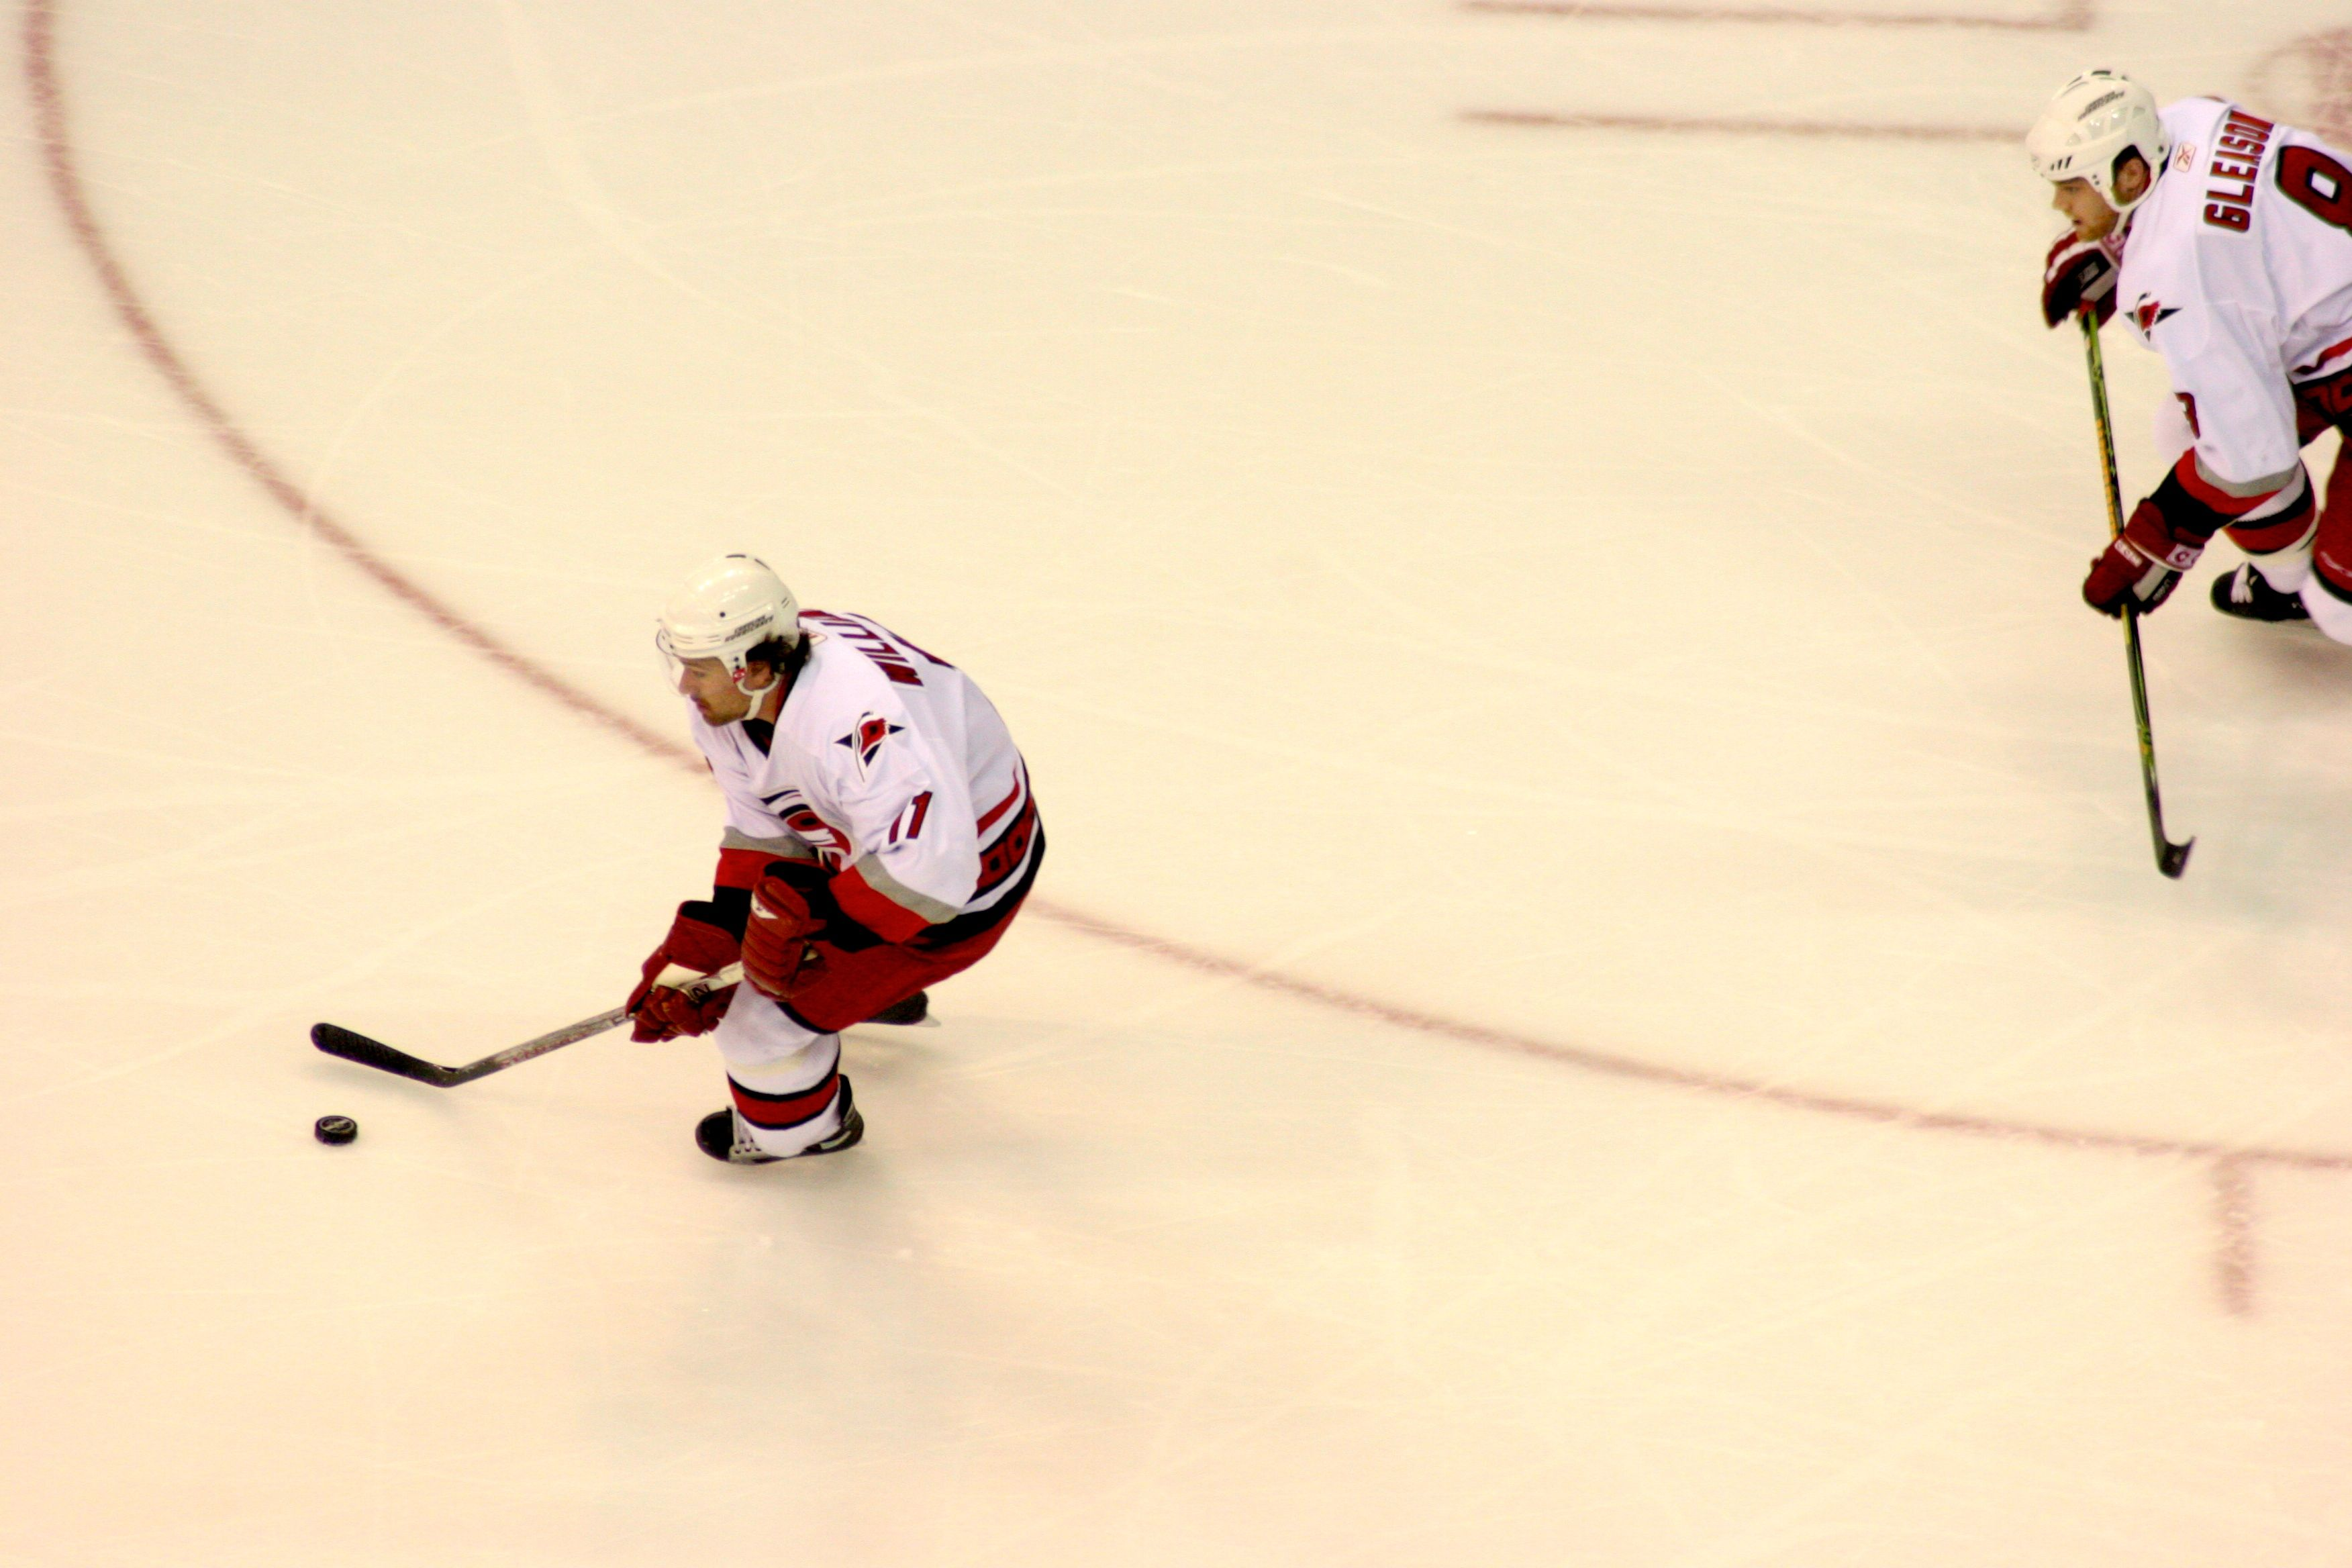 Williams & Gleason take the puck down the ice against the Capitals, March 2007.